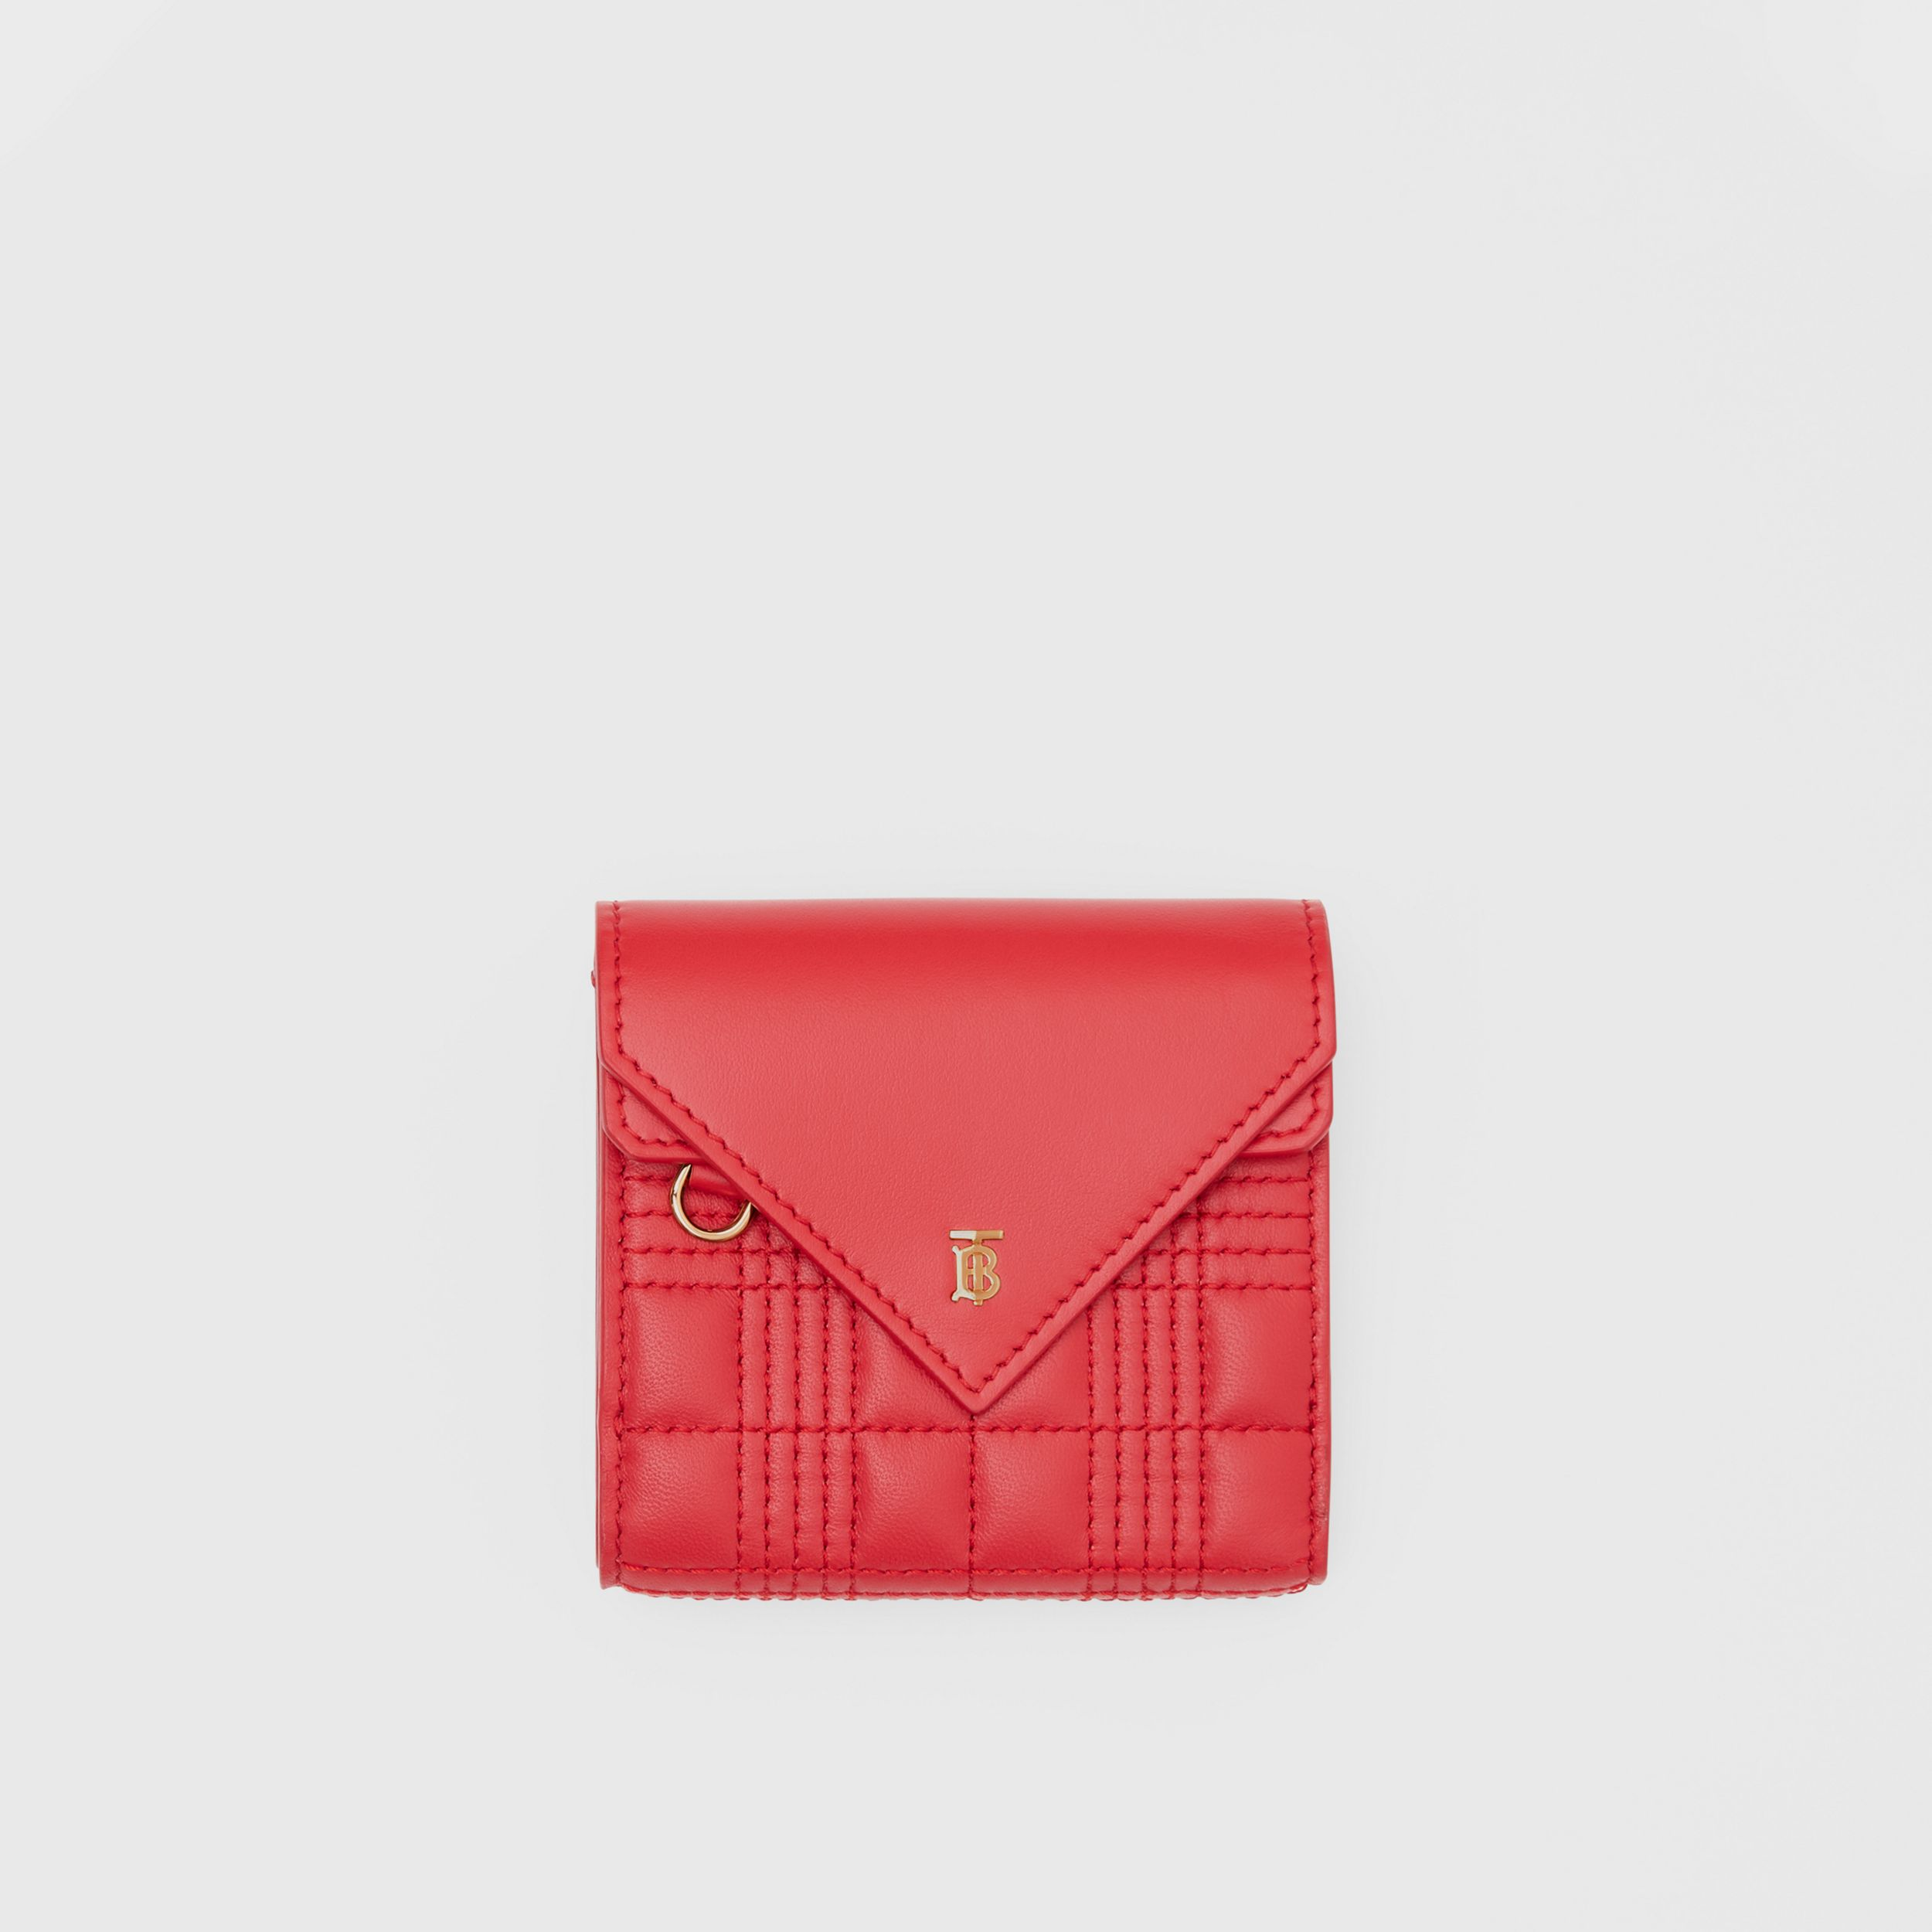 Quilted Lambskin Folding Wallet in Bright Red - Women | Burberry - 1